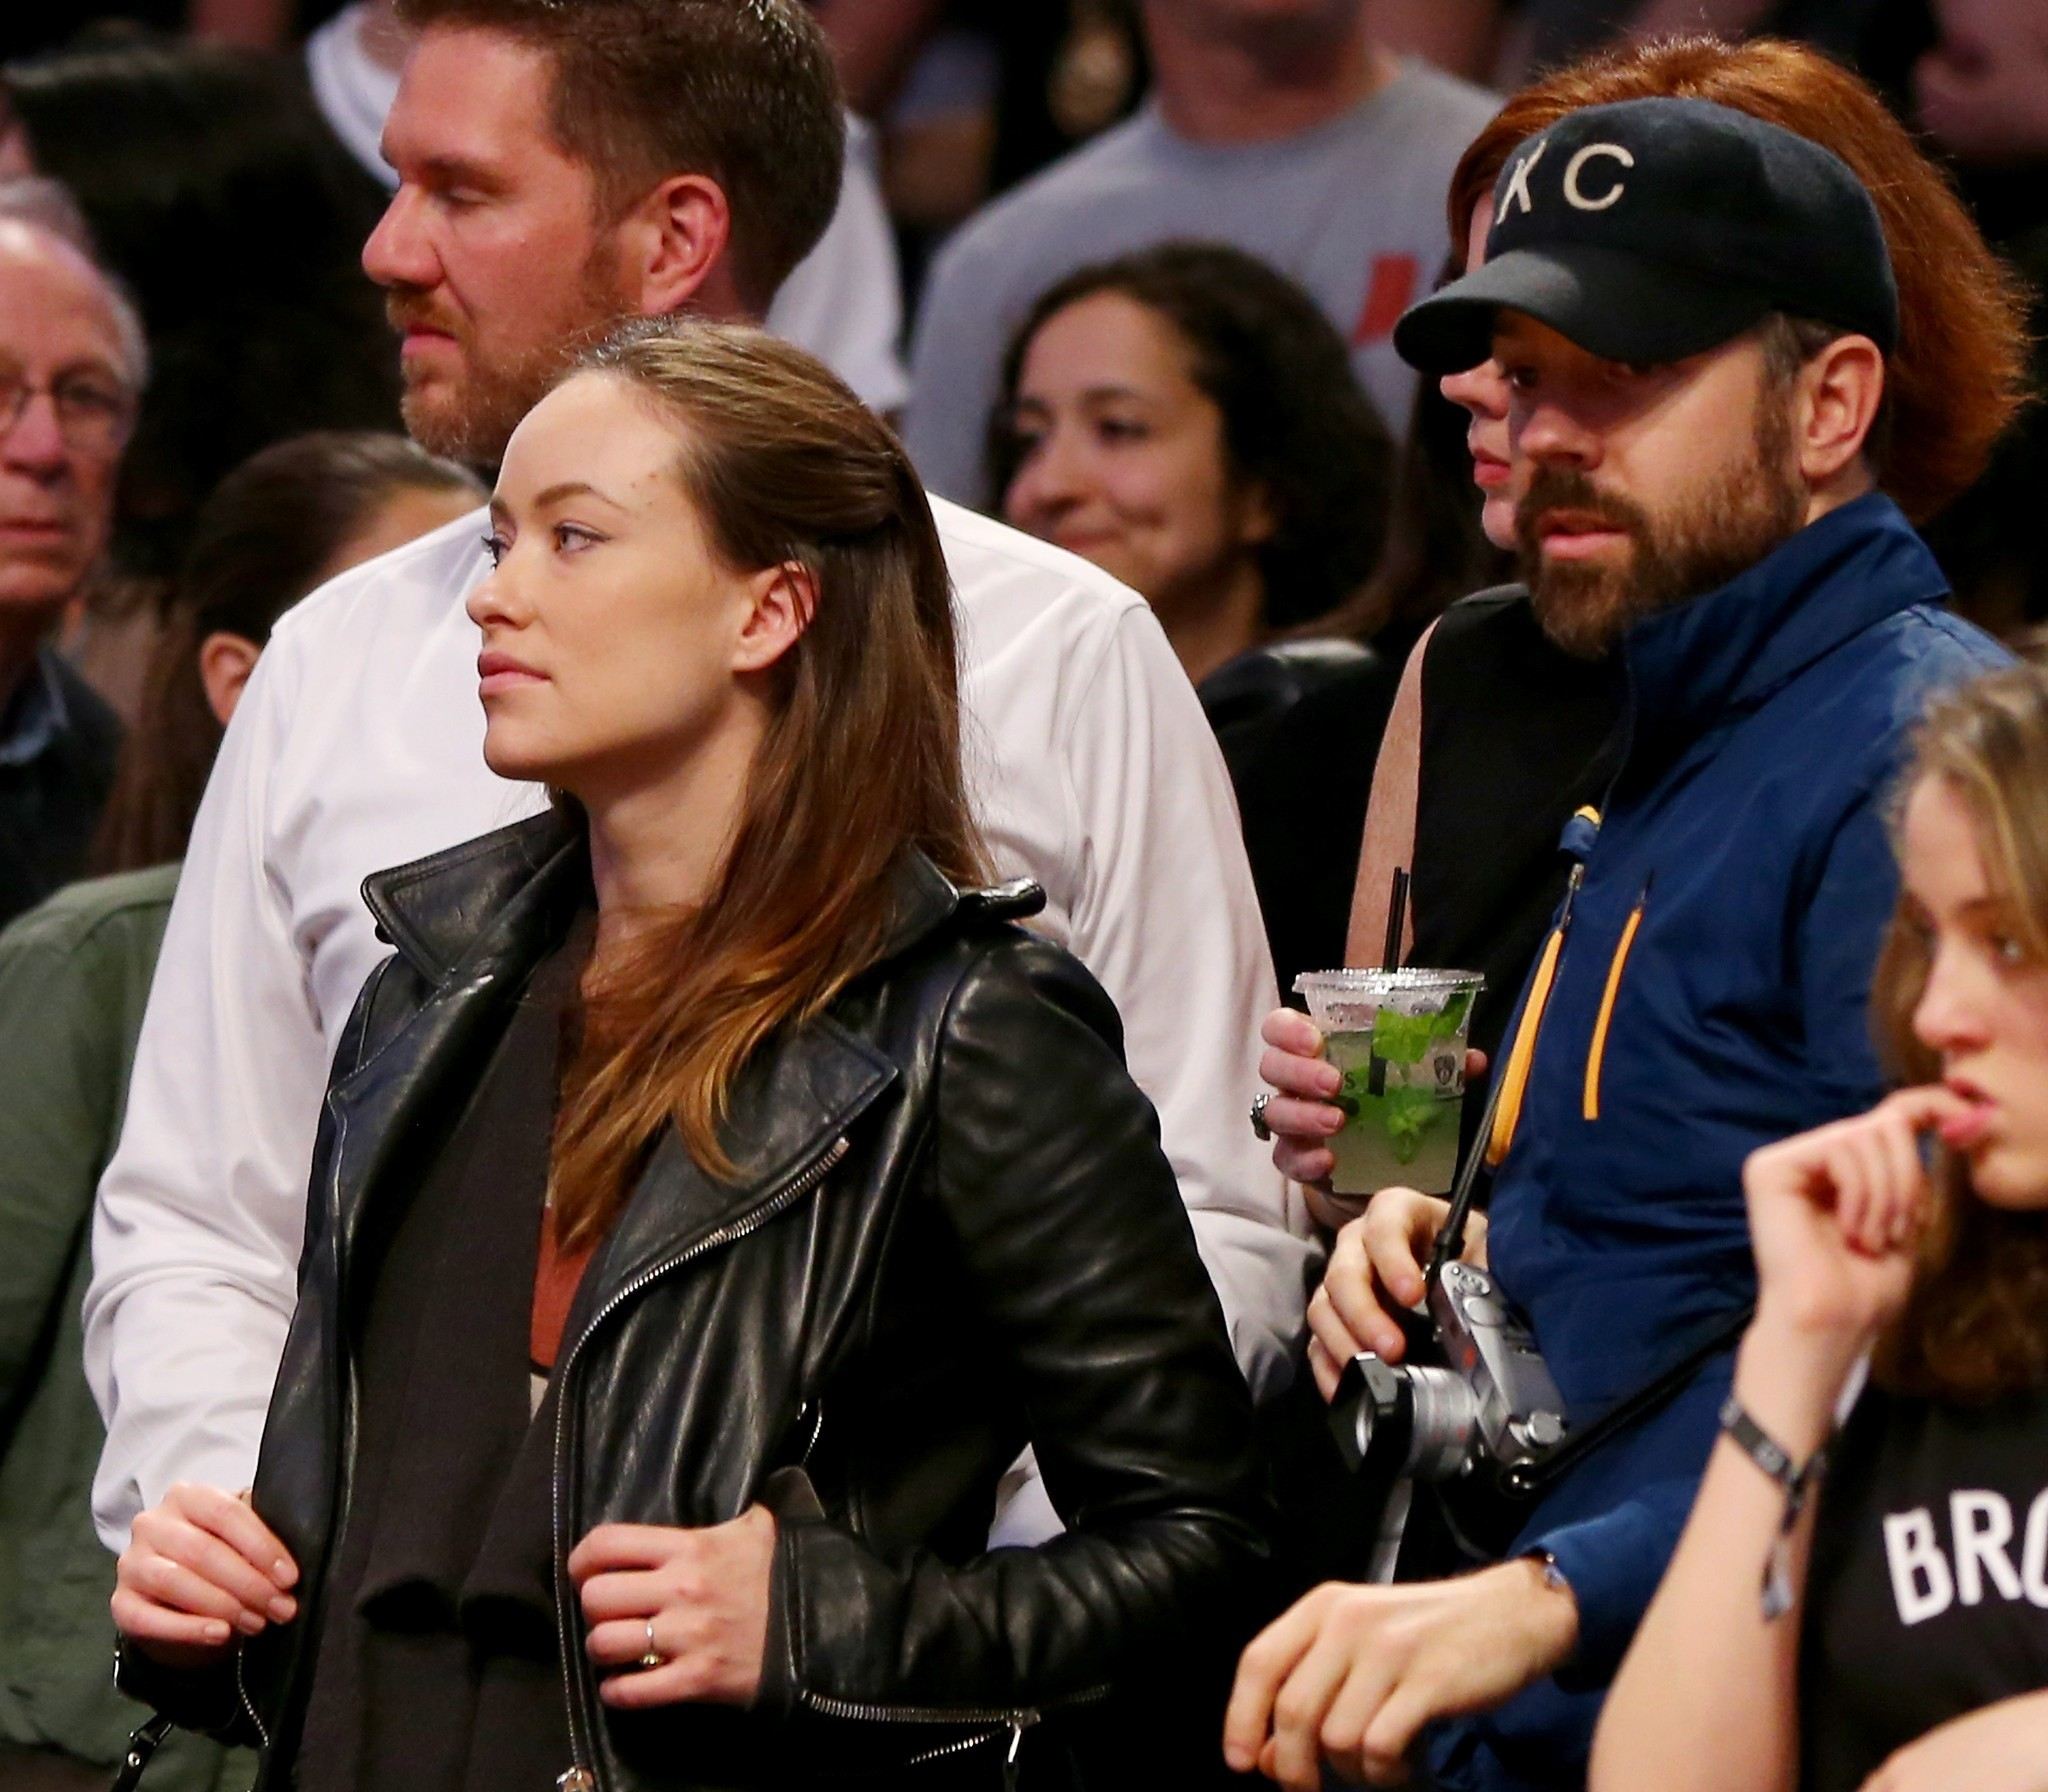 Celebs spotted at Miami Heat games - Olivia Wilde and Jason Sudekis